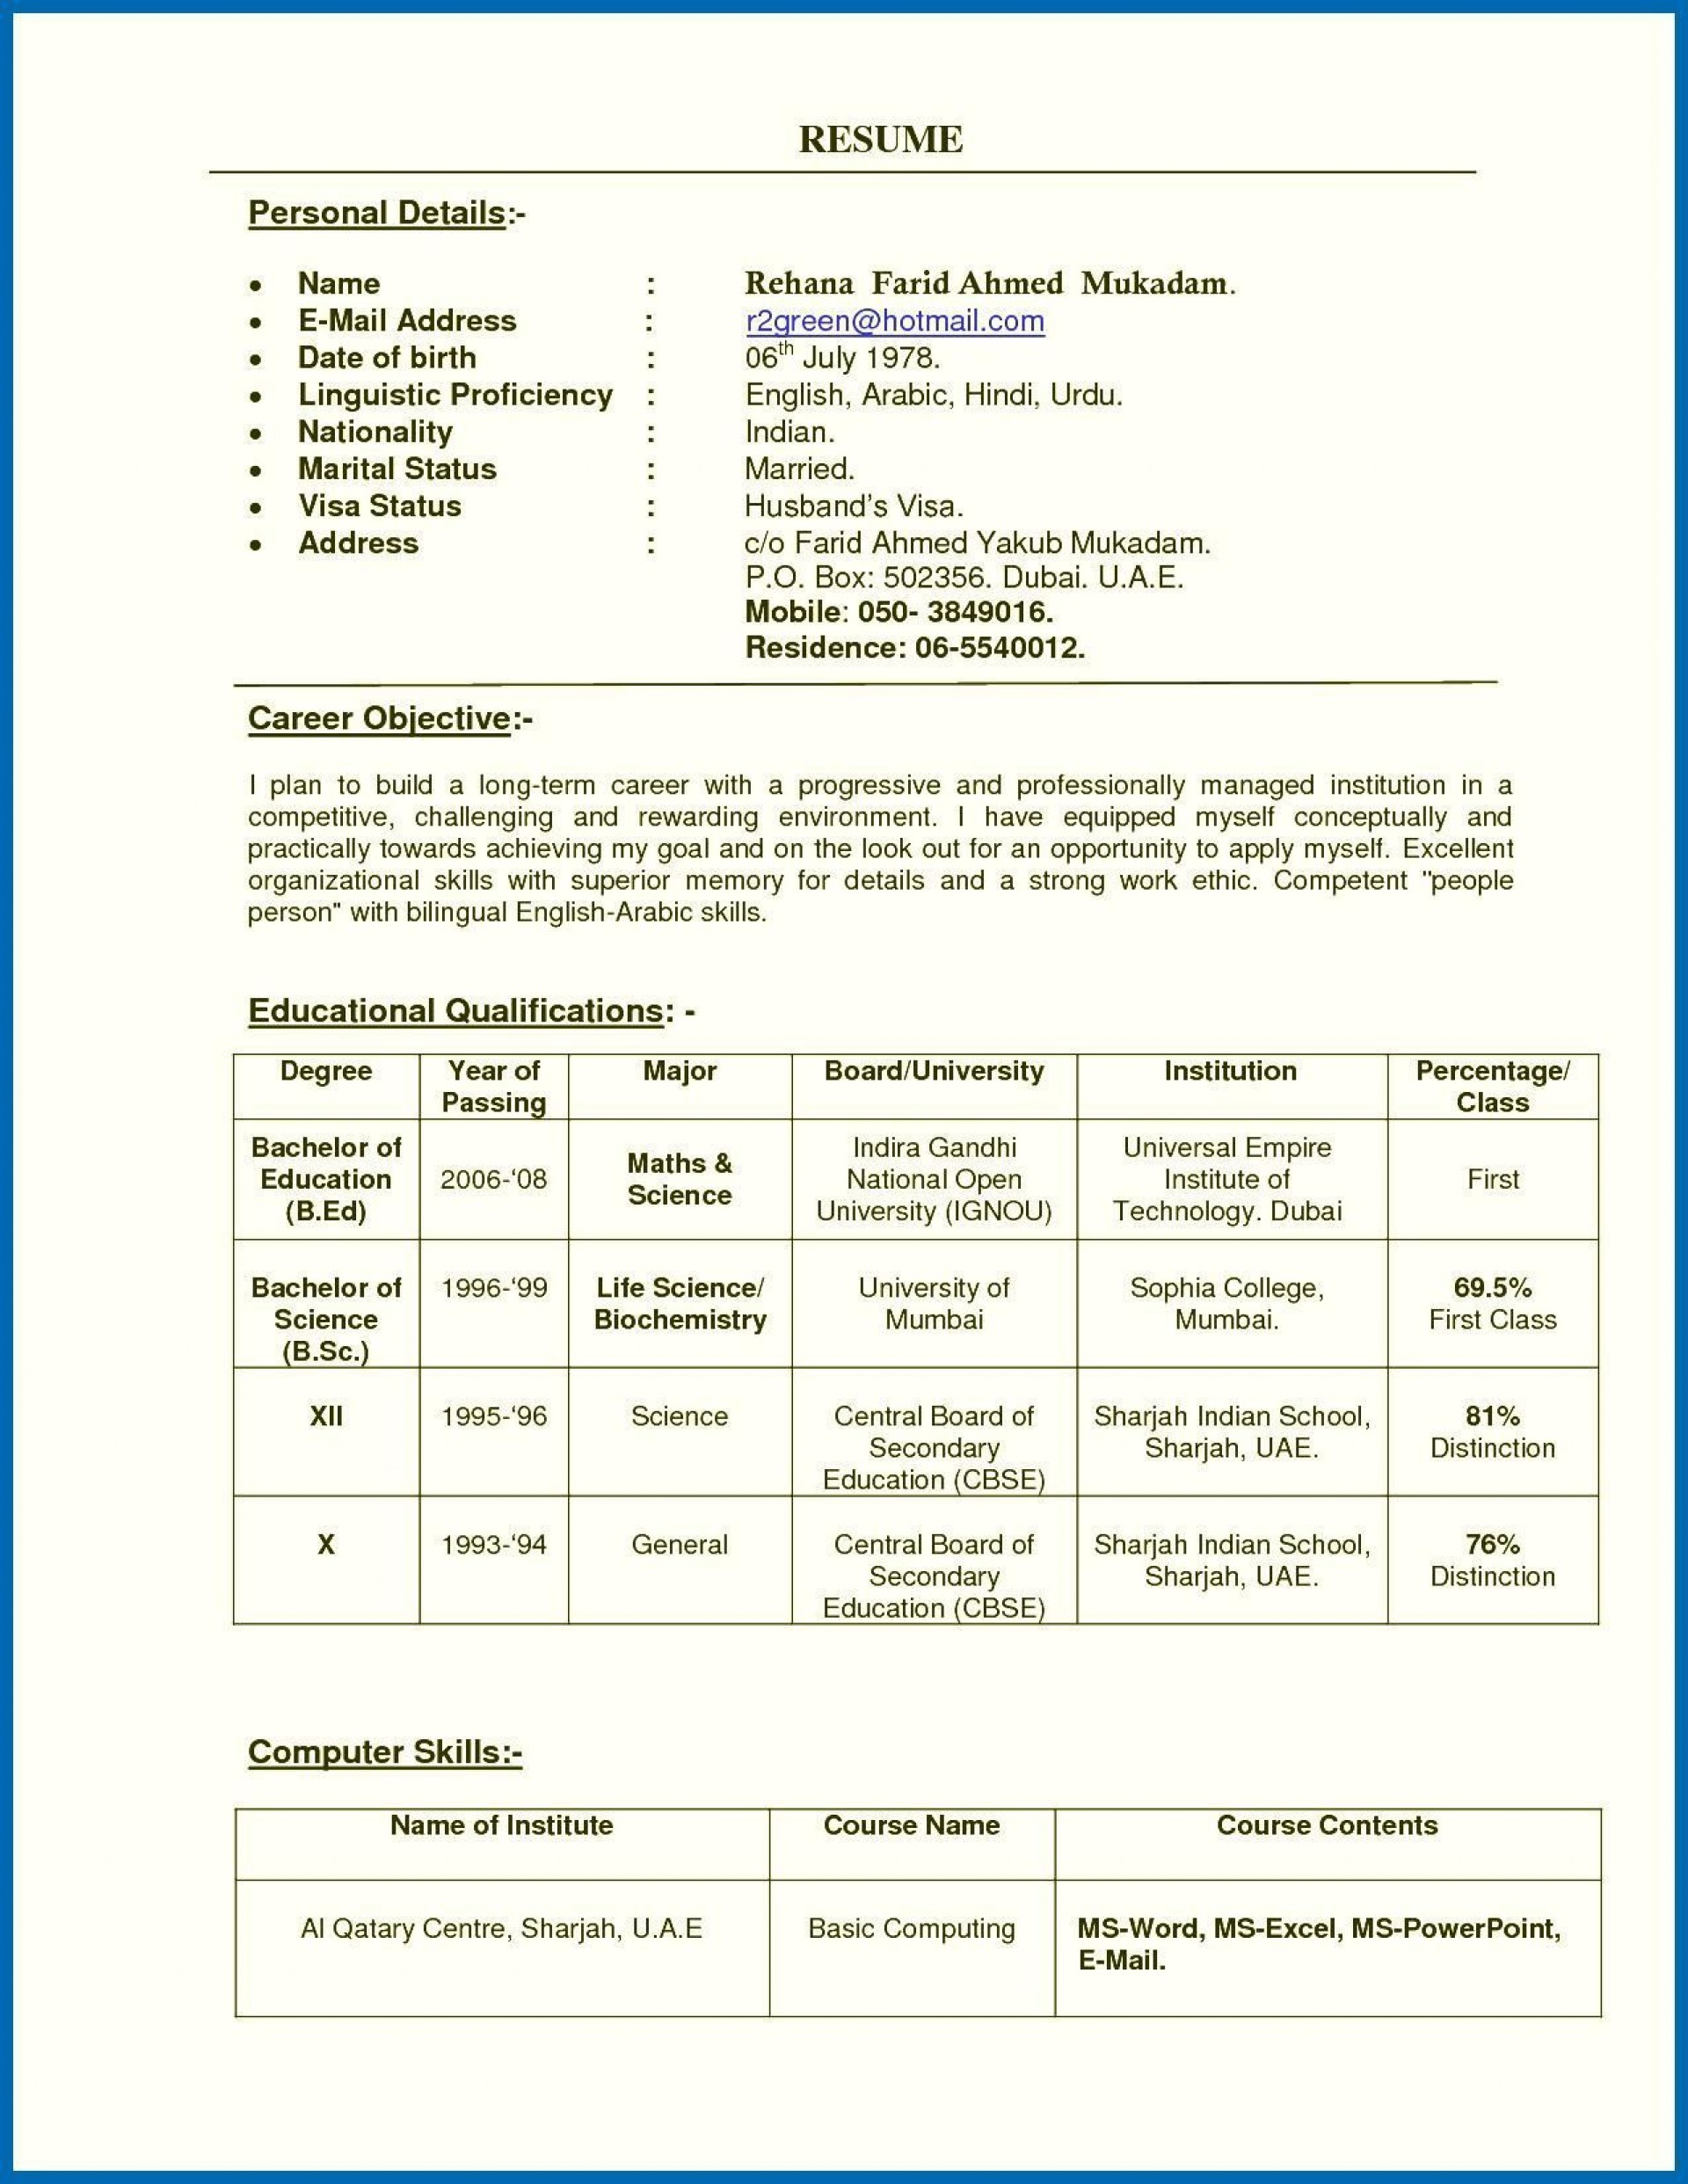 002 Marvelou Resume Sample For Teaching Job In India High Definition  School Principal Position1920